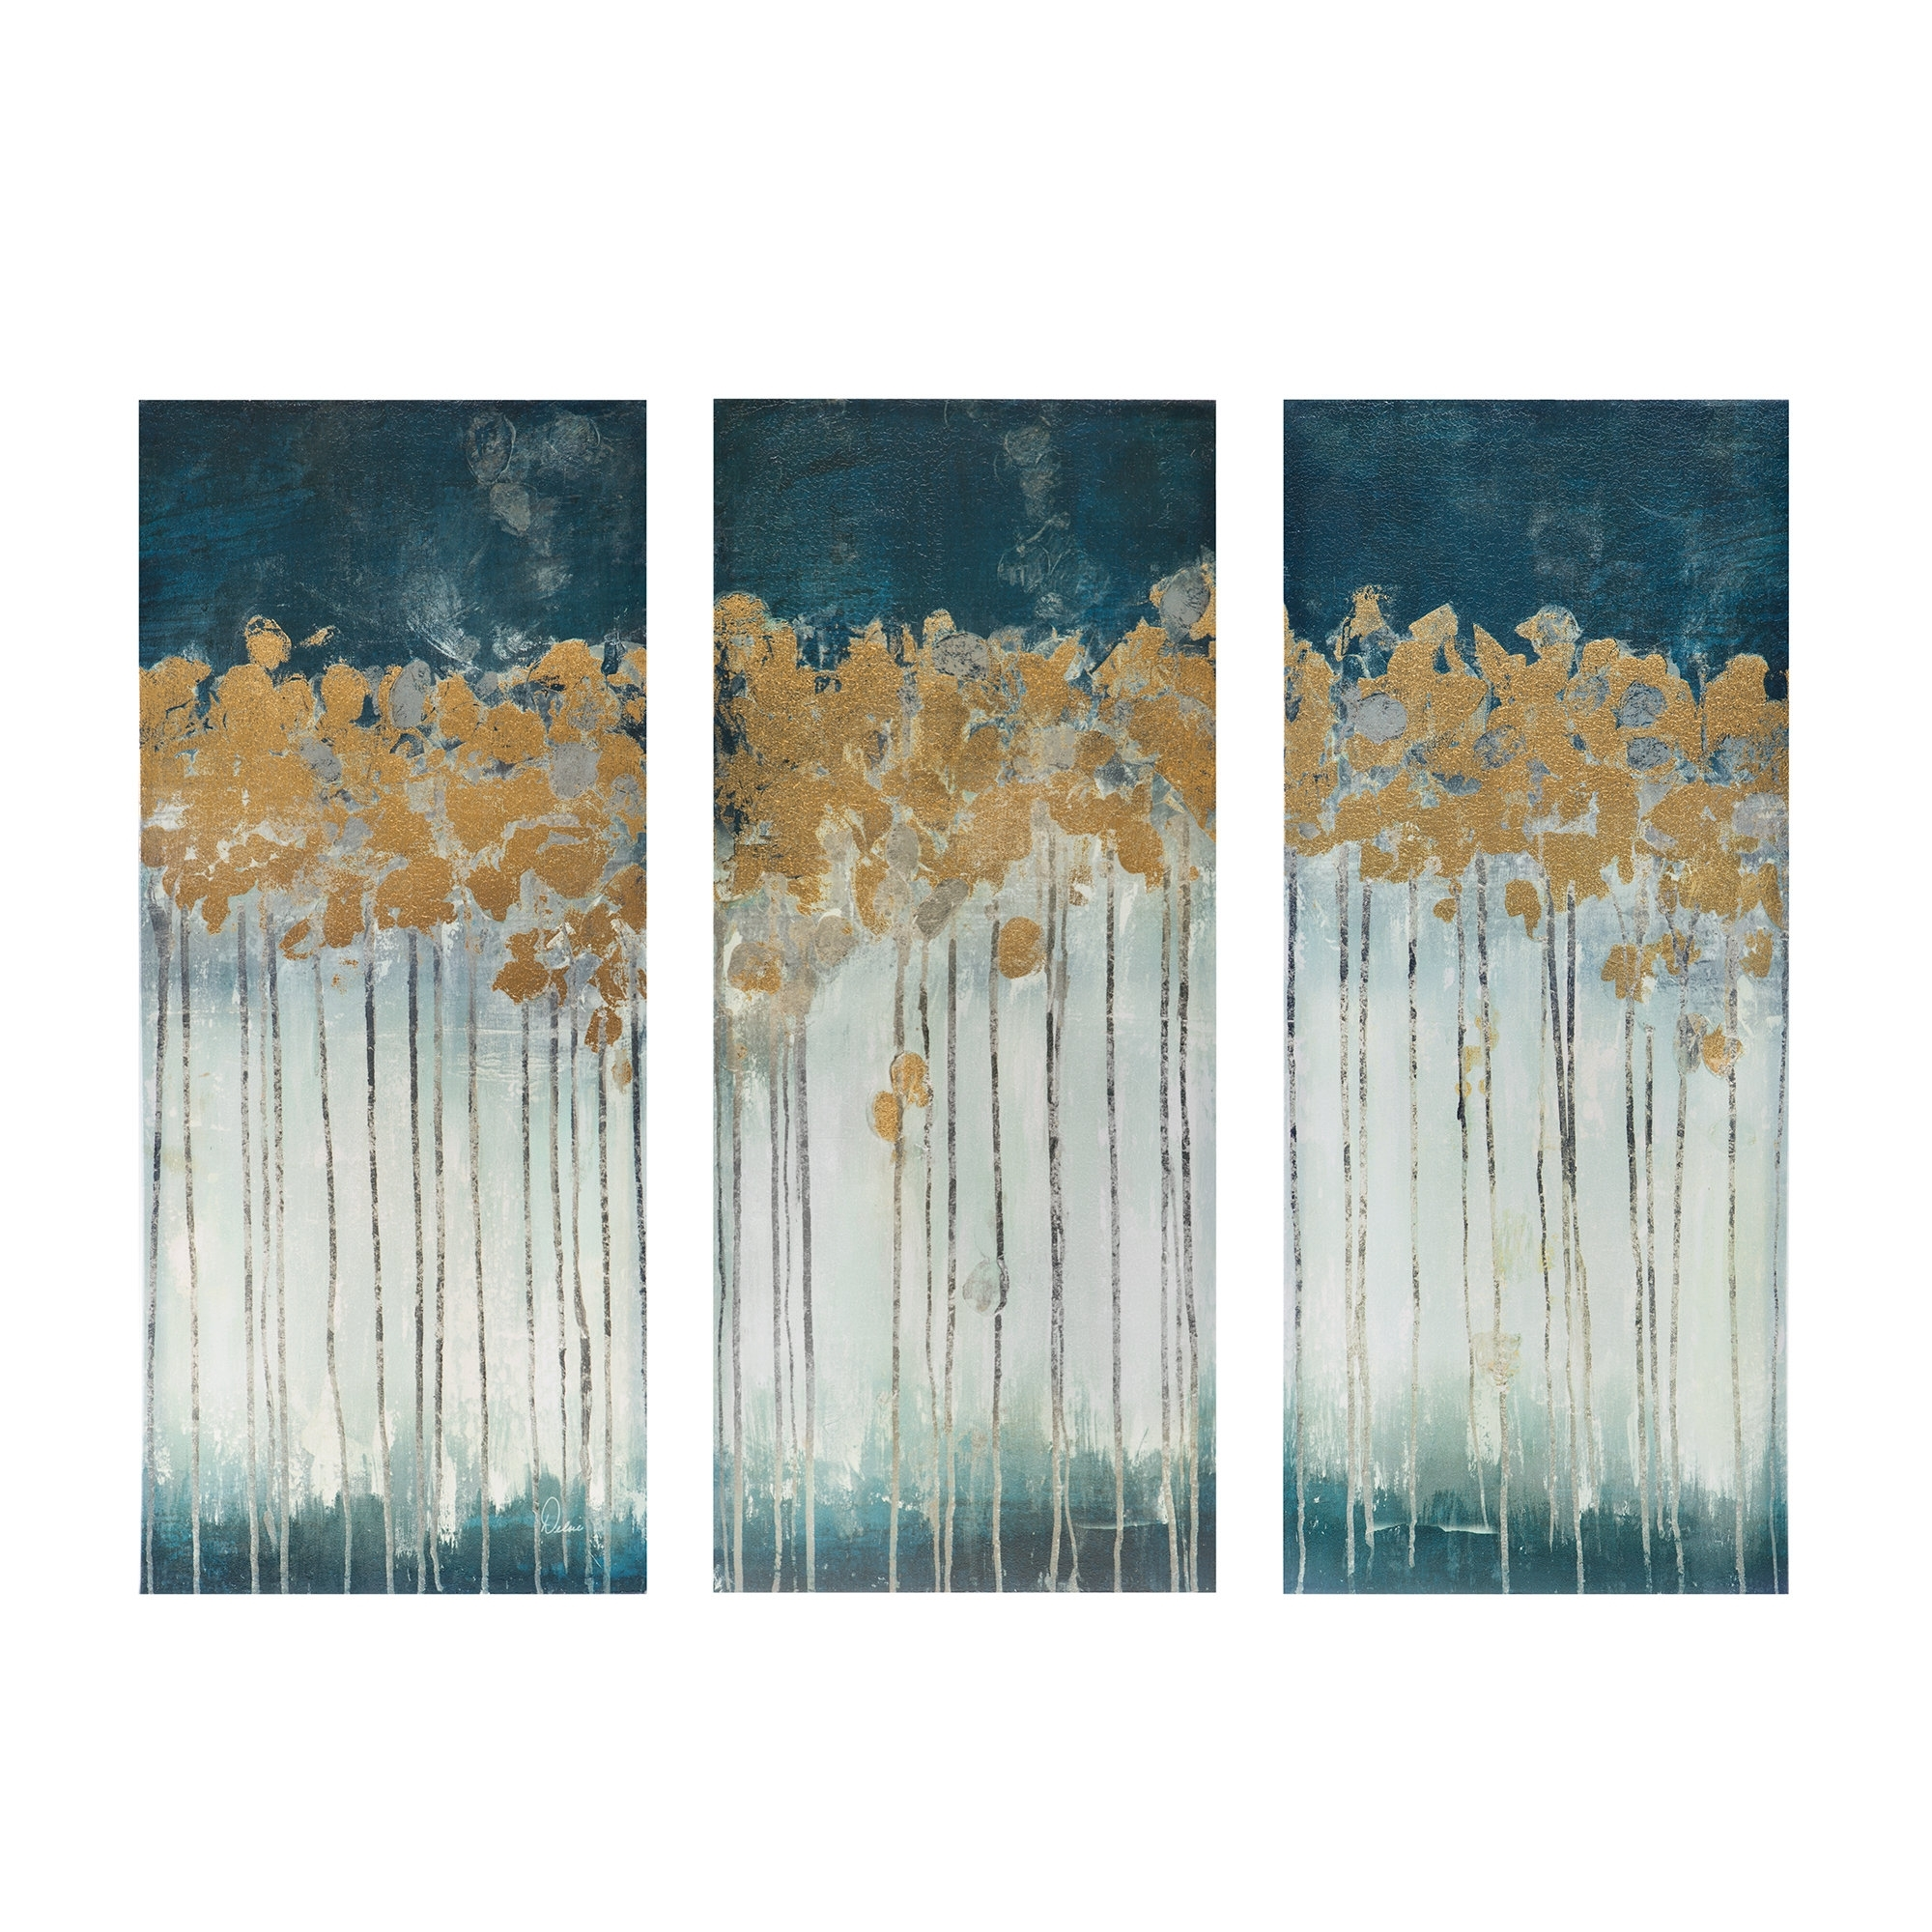 Midnight Forest' Gel Coat Canvas Wall Art With Gold Foil With Newest Gold Canvas Wall Art (View 8 of 15)